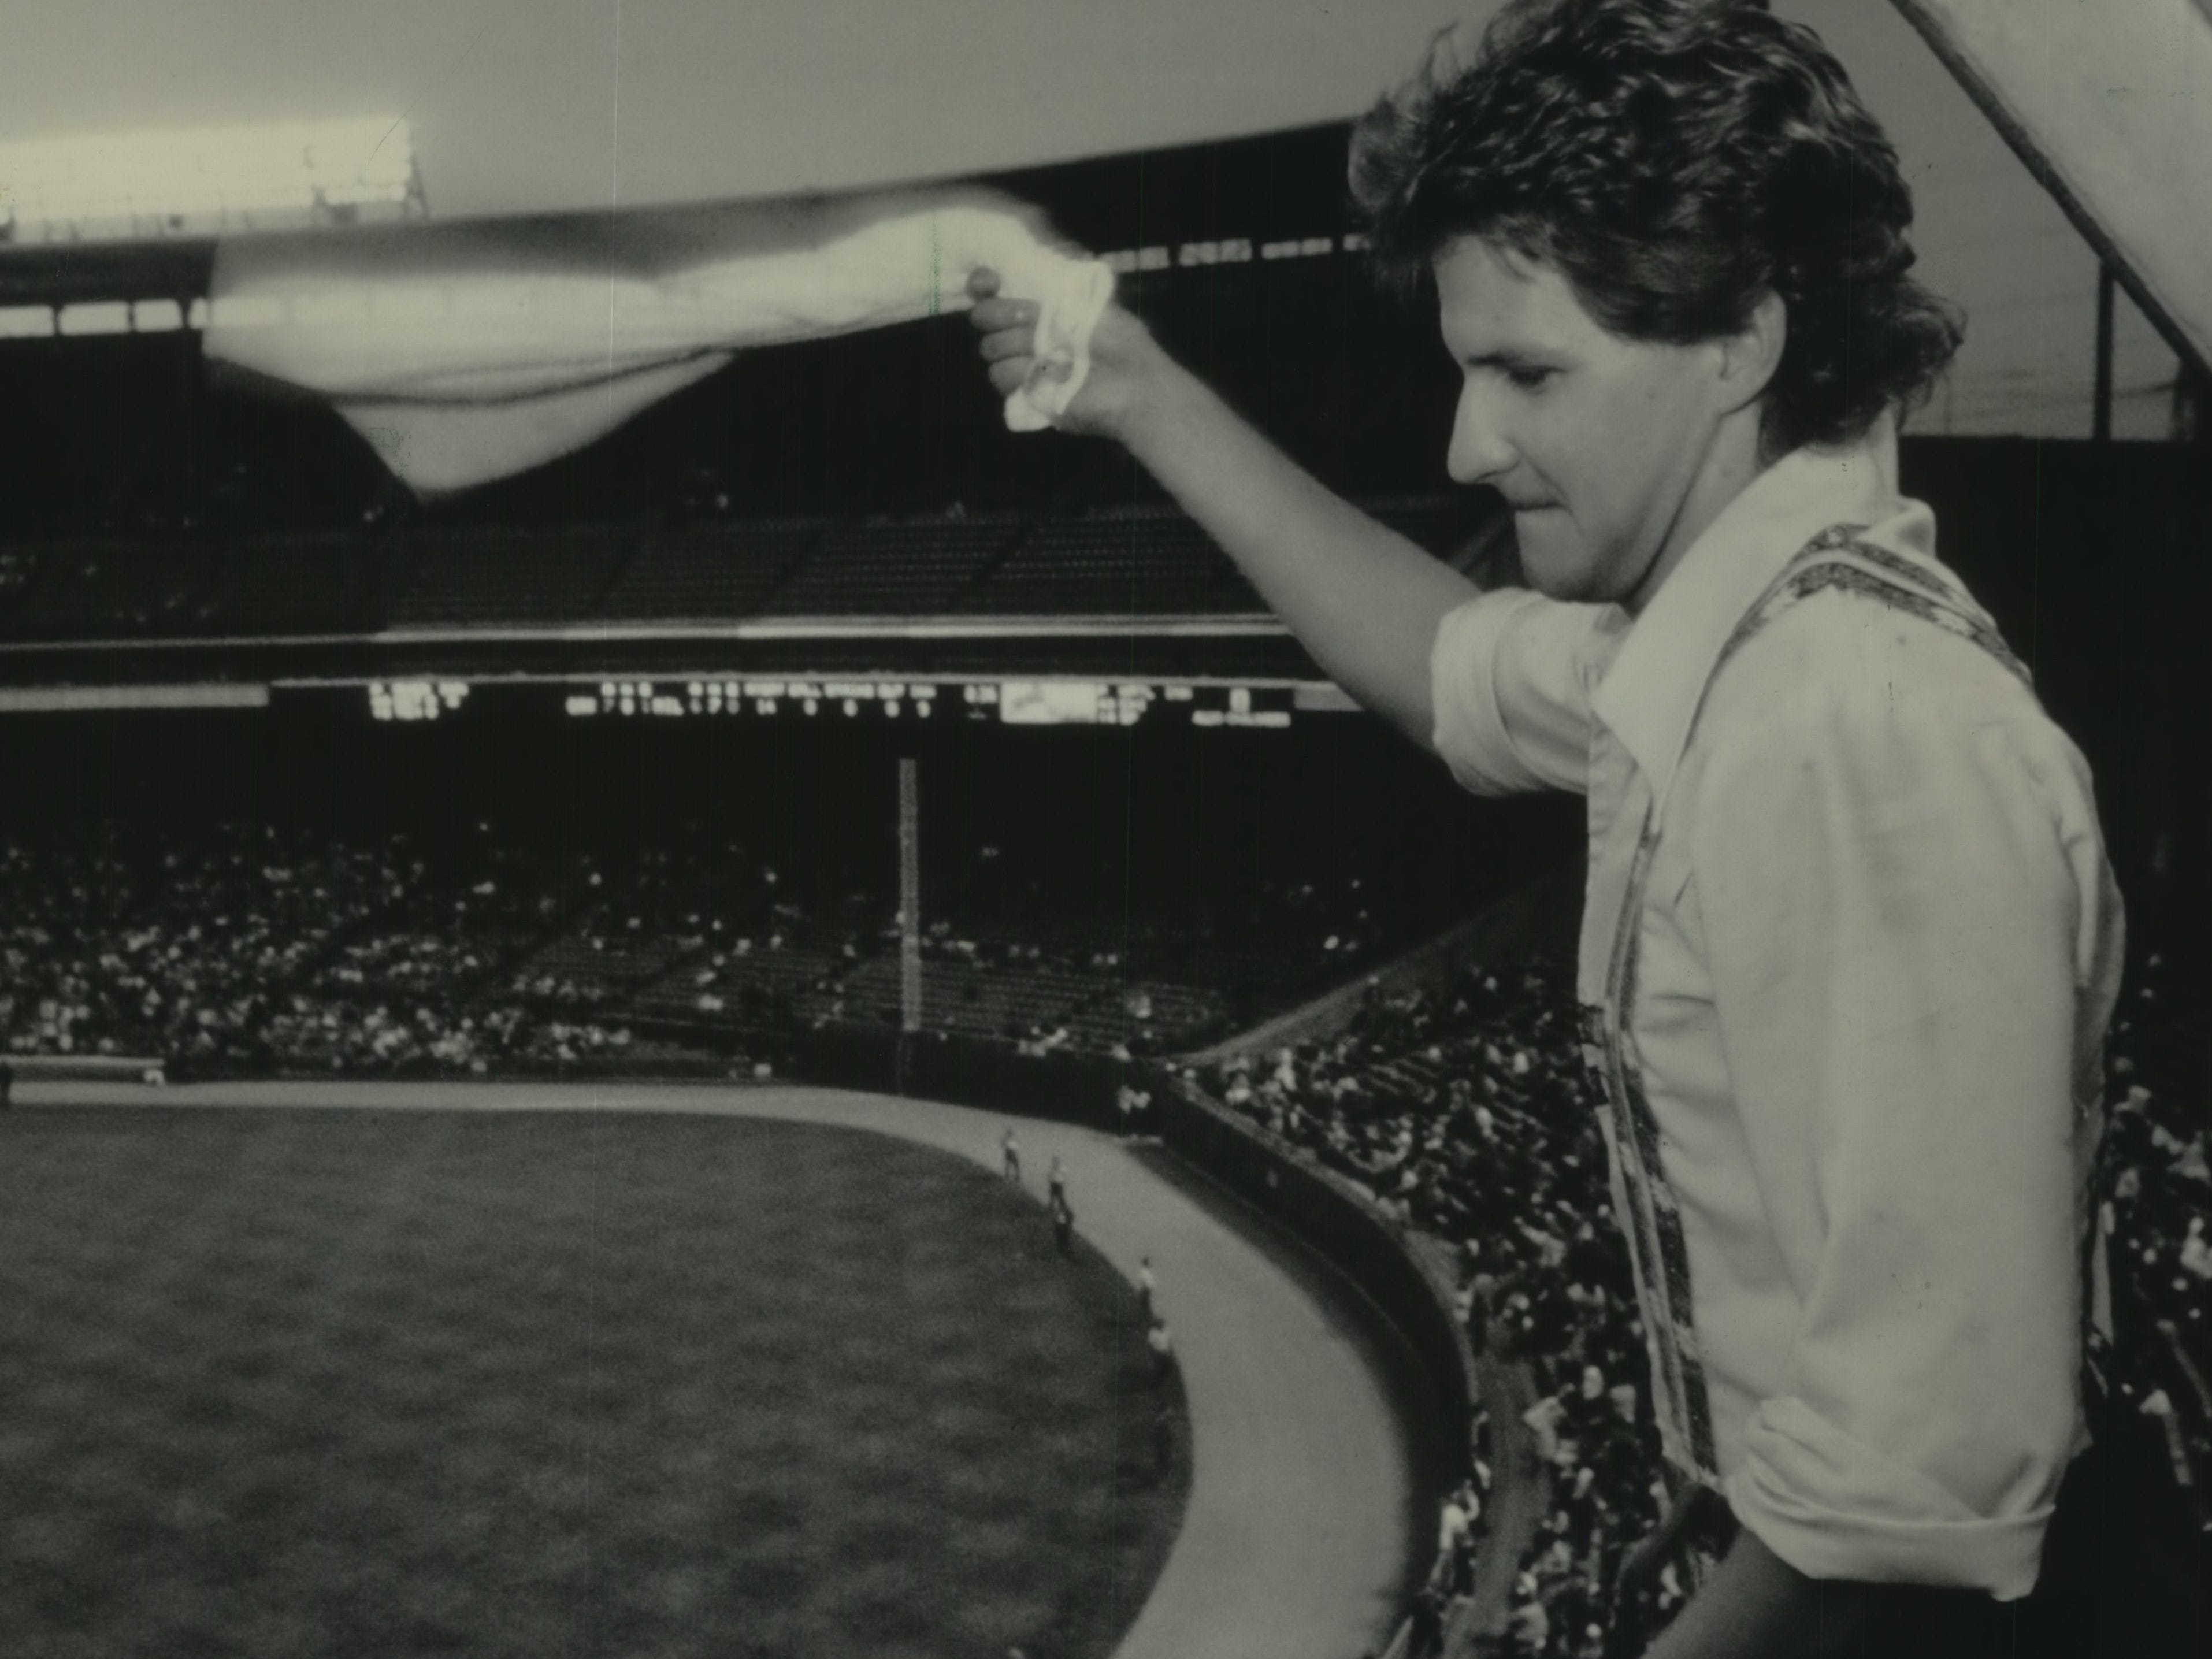 Bernie Brewer (real name: Tom Lund) tries to stir up the crowd from his chalet above the bleachers in center field, using his version of the rally towel during a game on July 6, 1984, during a doubleheader at County Stadium. This photo was published in the July 9, 1984, Milwaukee Journal.